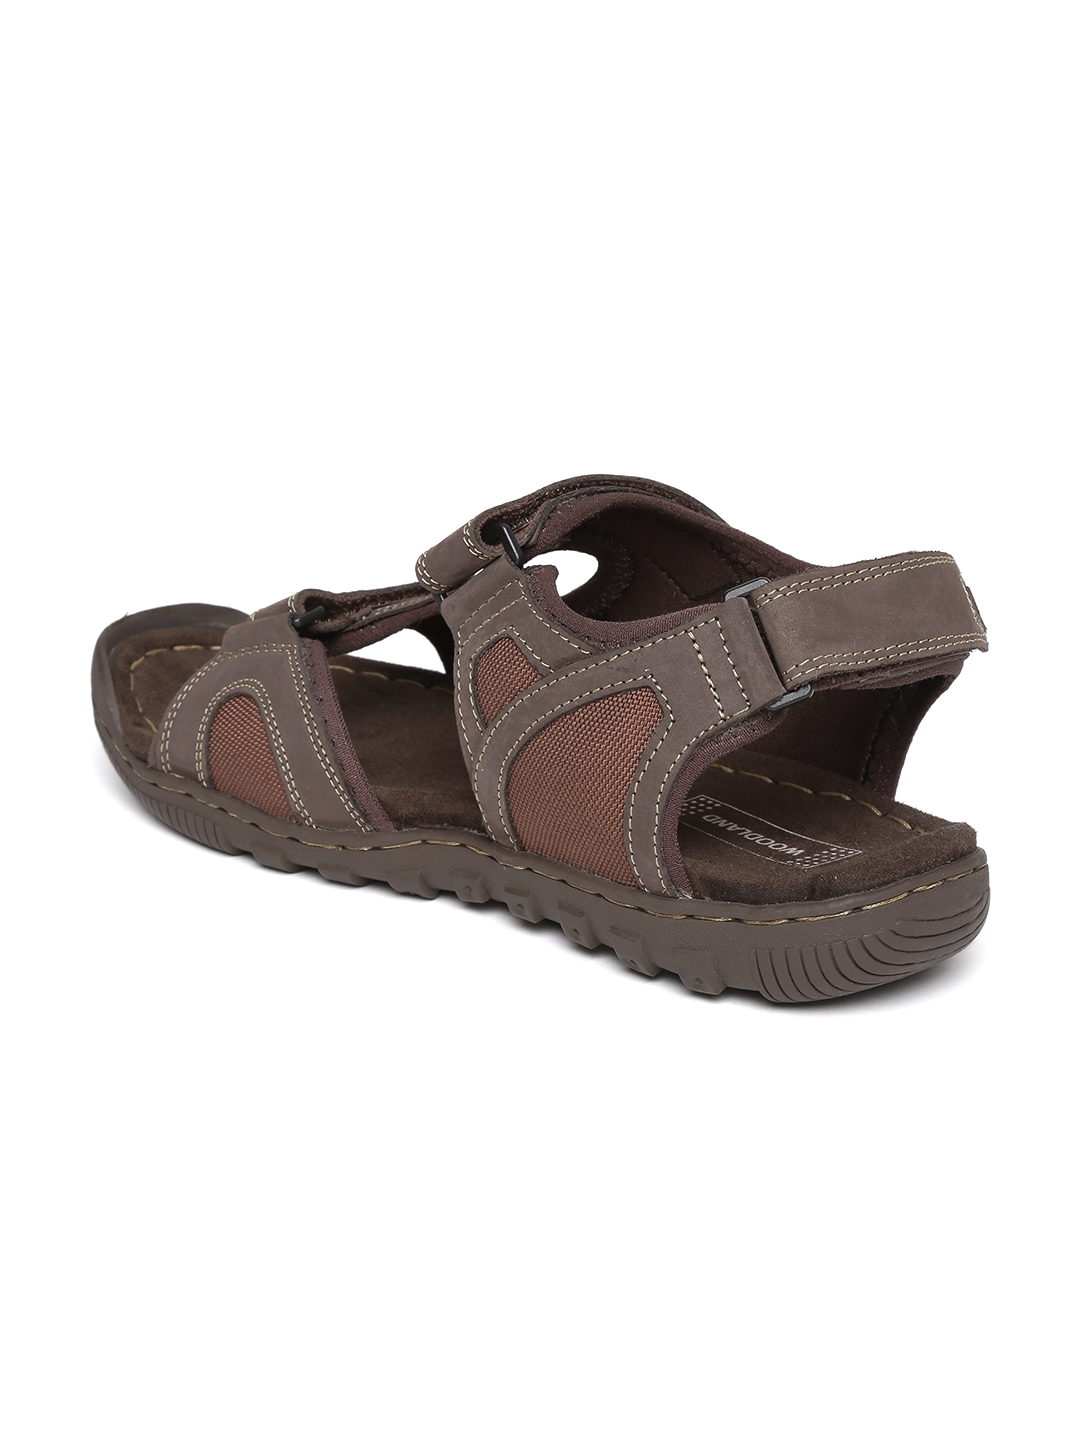 9e1ffa0cc5e Buy Woodland Men Brown Nubuck Leather Sandals - Sports Sandals for ...